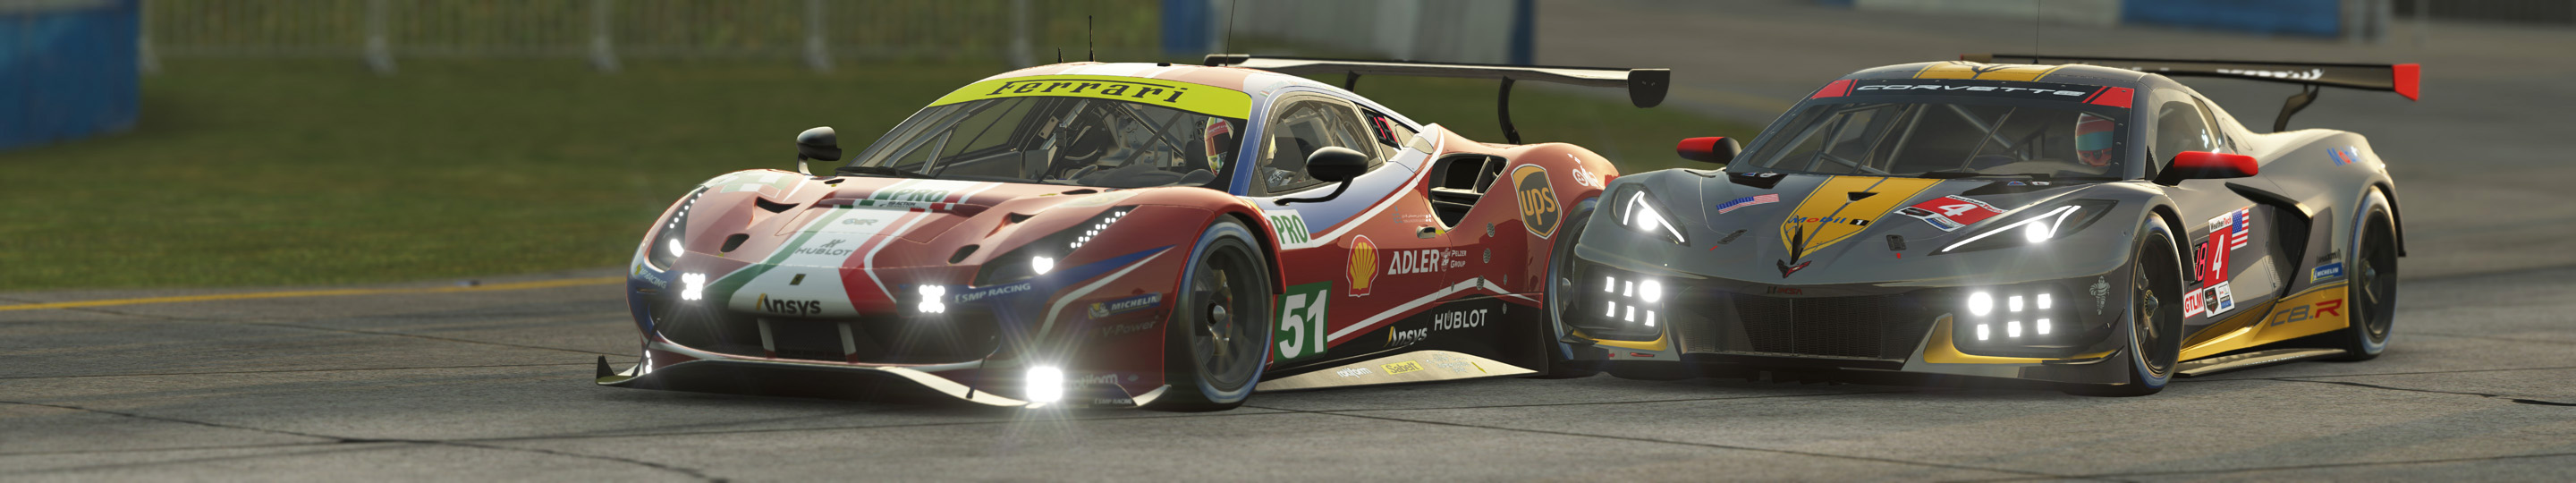 0 rFACTOR 2 CORVETTE C8 & FERRARI GTE at SEBRING copy.jpg